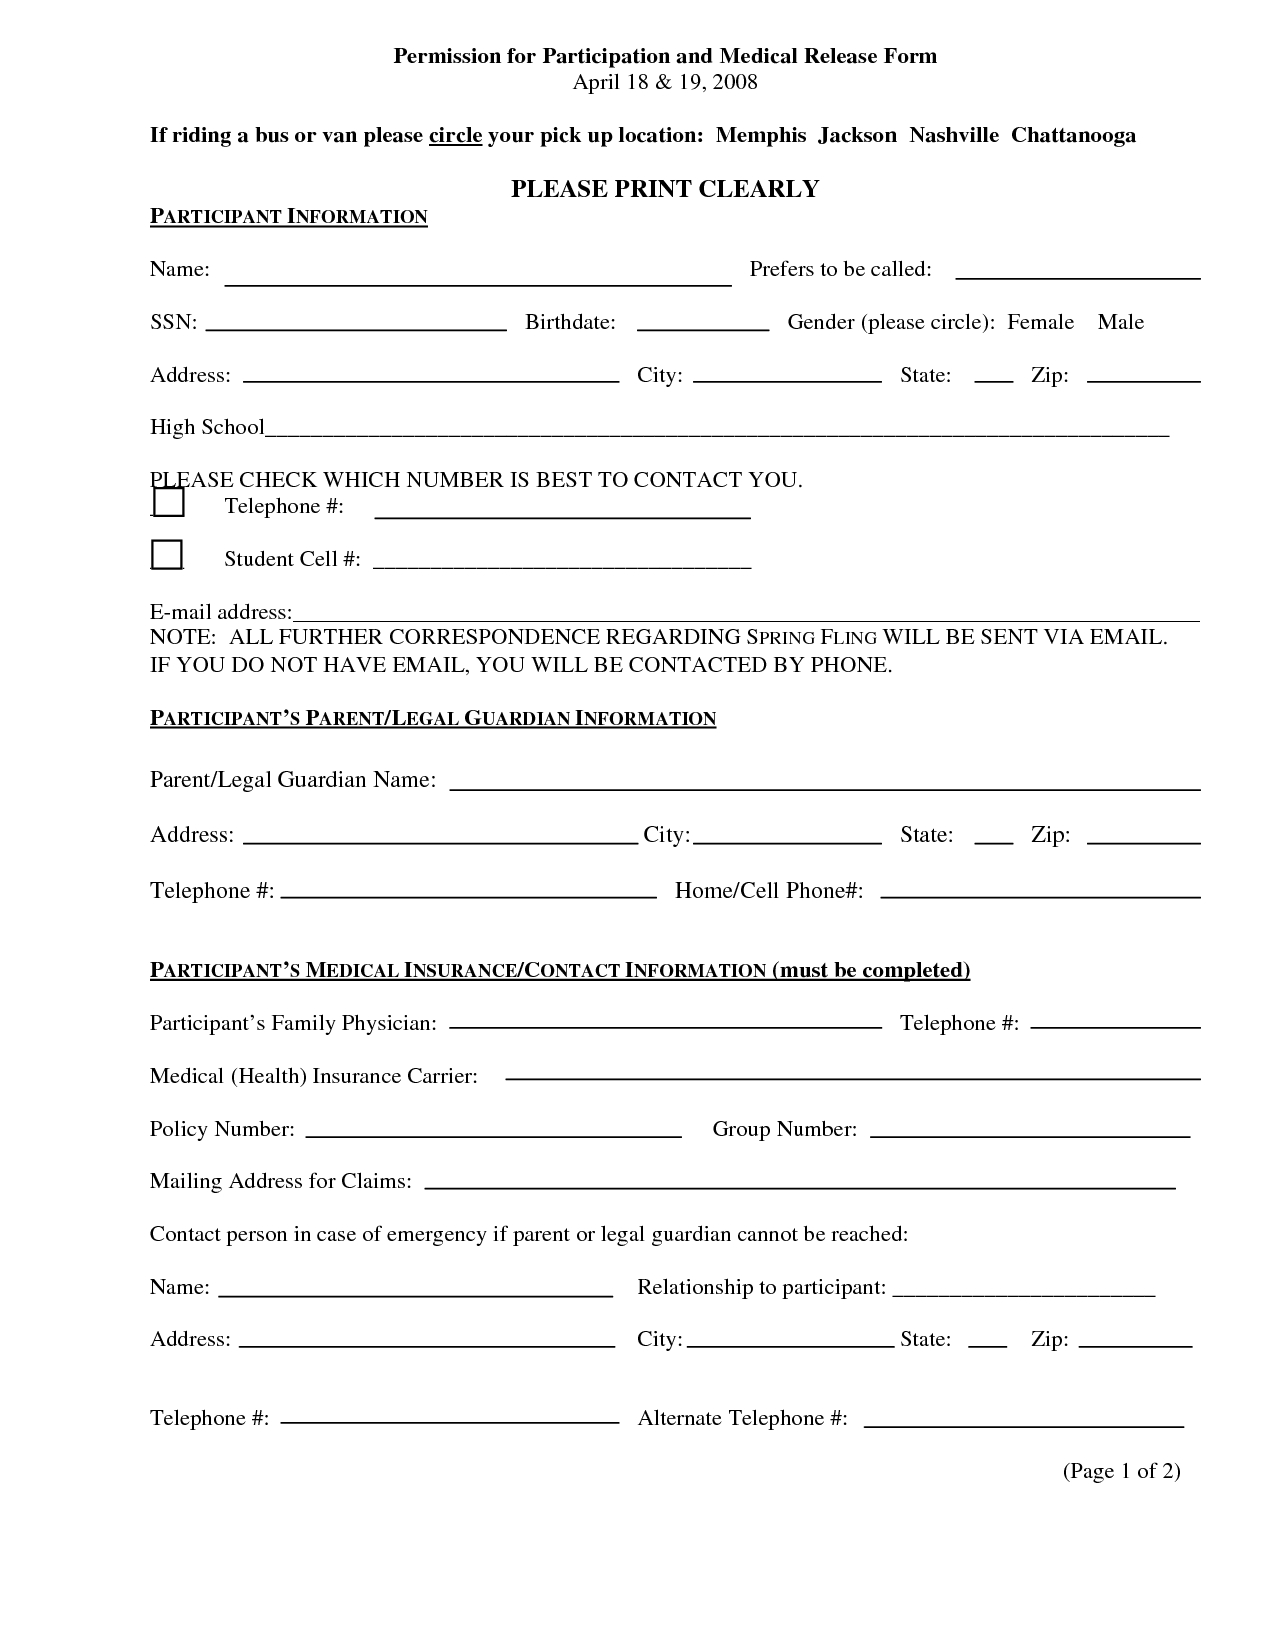 Pingiovanni Mastrocola On Pain No Gain   Incident Report Form - Free Printable Medical Forms Kit